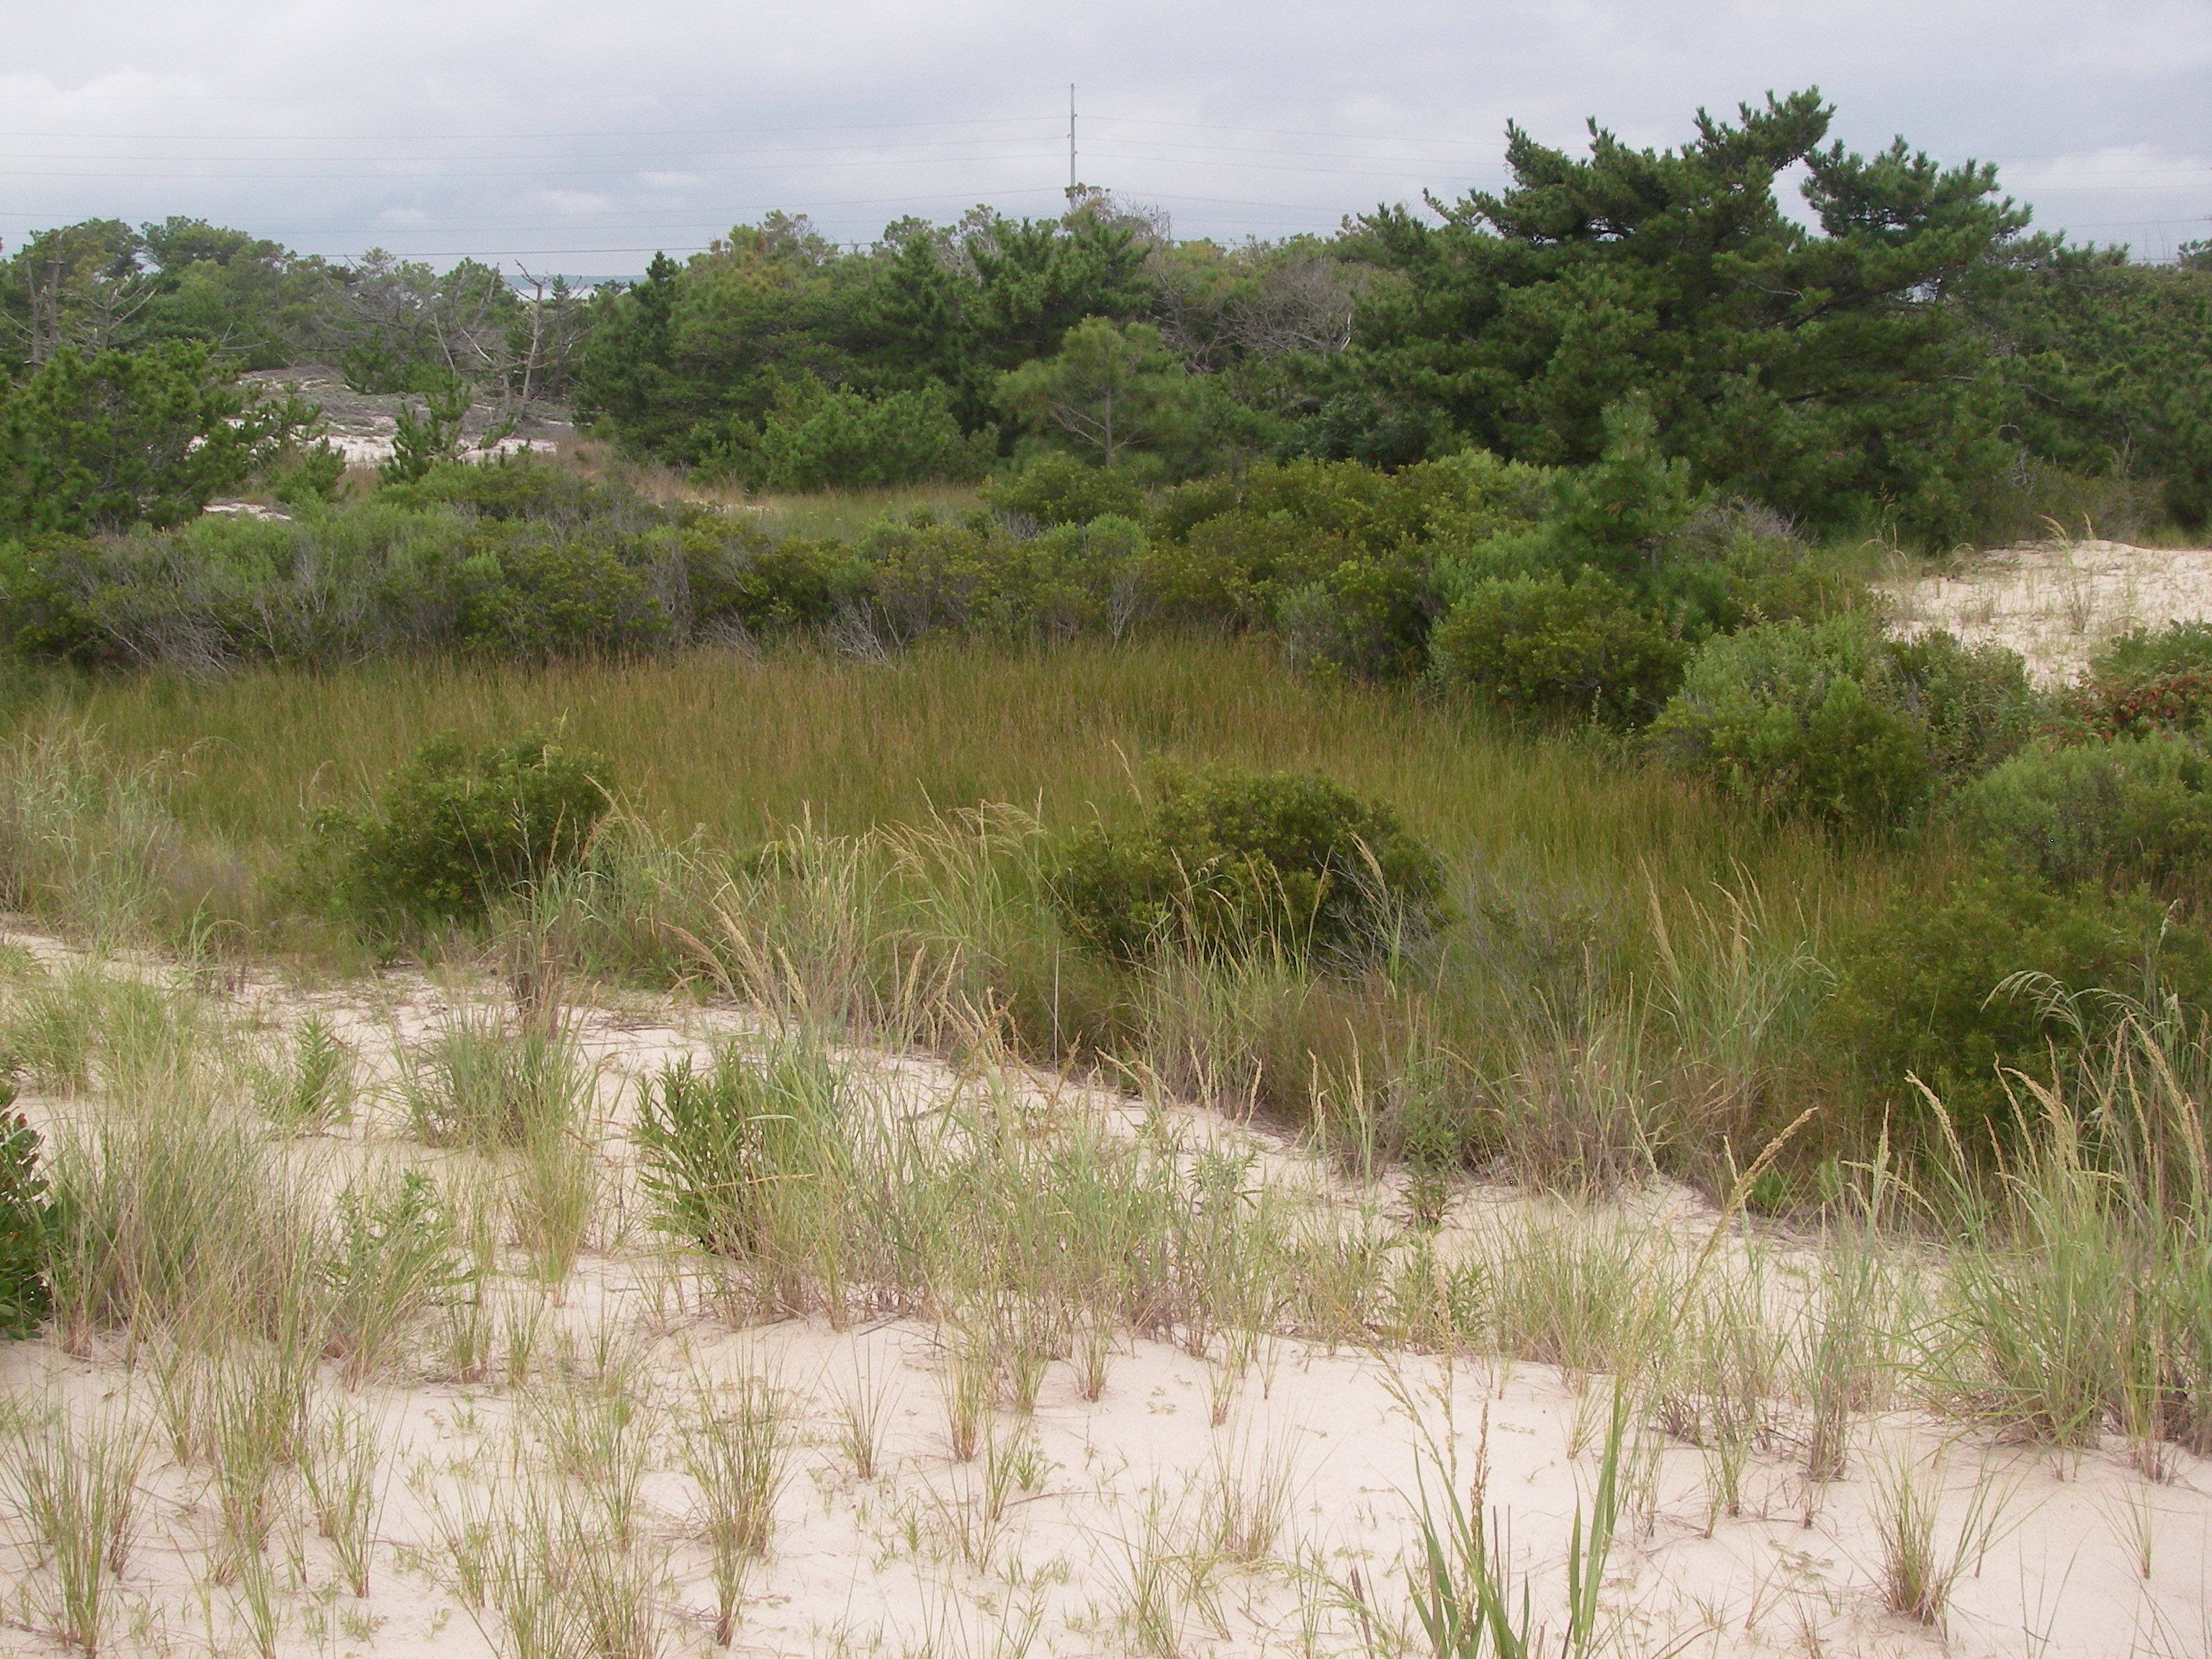 Sand, shrubs, and beach grass pepper this landscape of gentle inclines and dips.